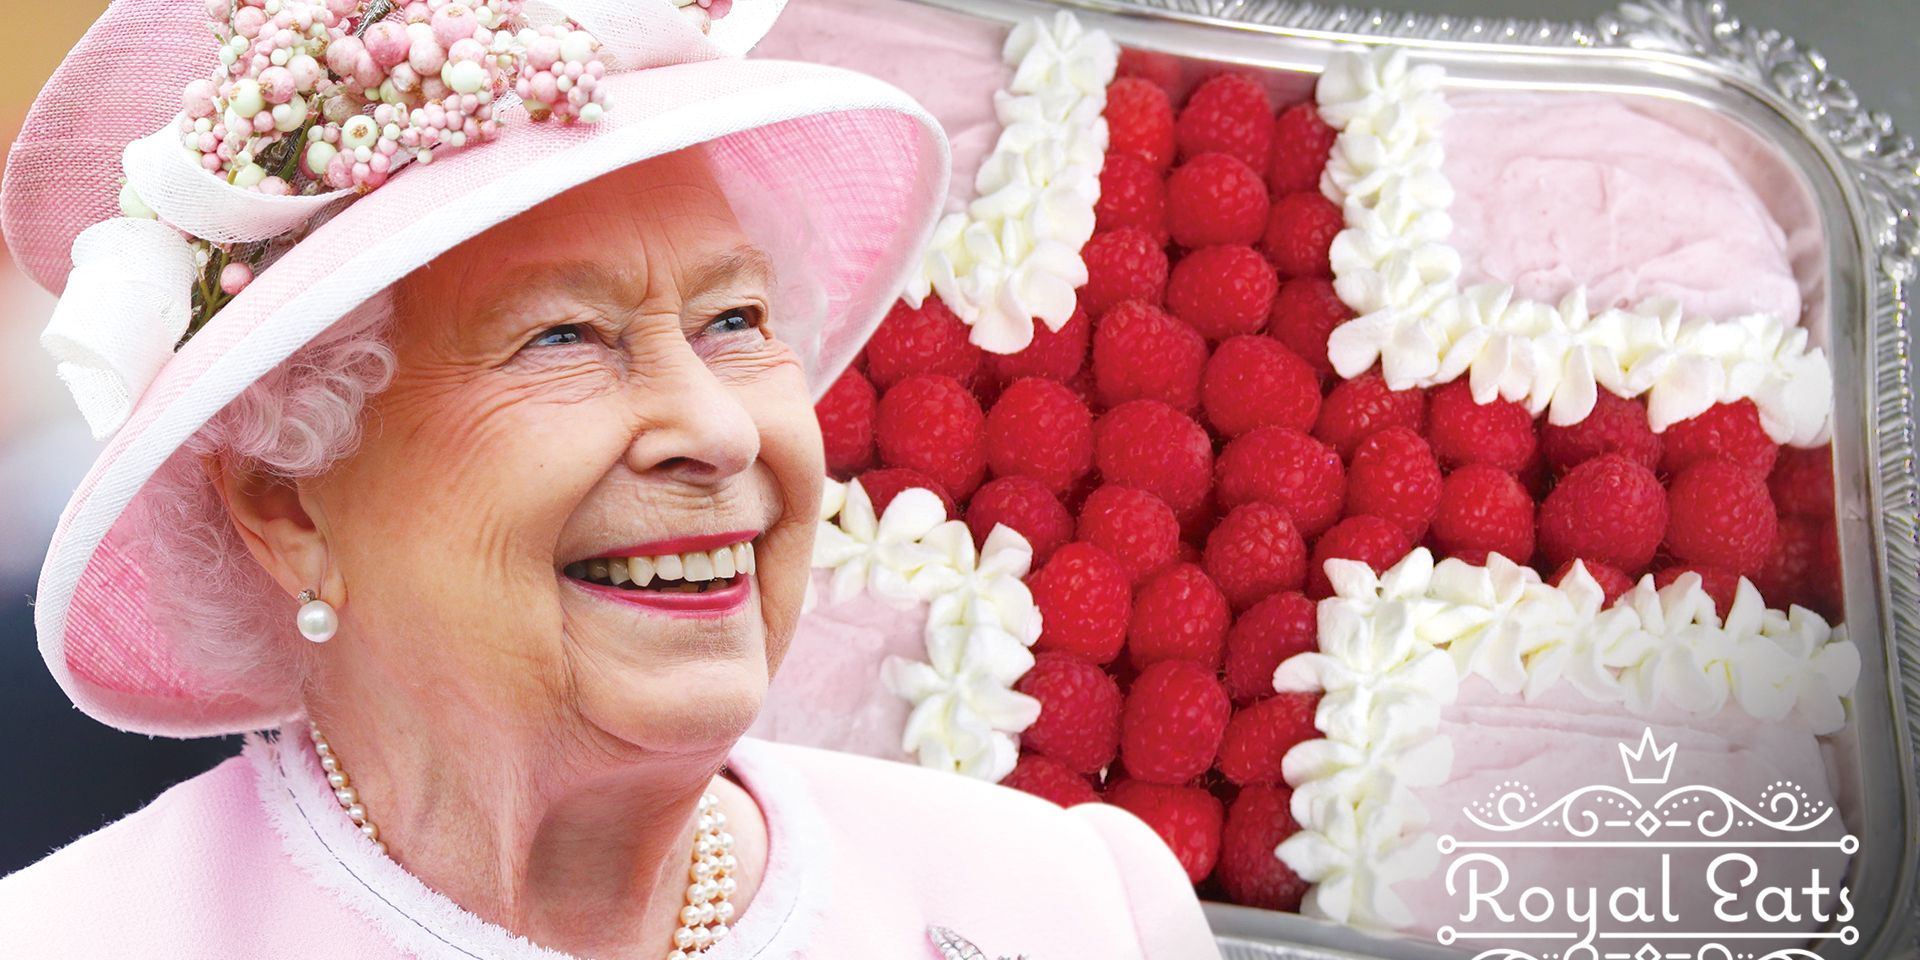 The Royal Chef Walked Us Through Queen Elizabeth's Very Favorite Framboise St. Georges Recipe